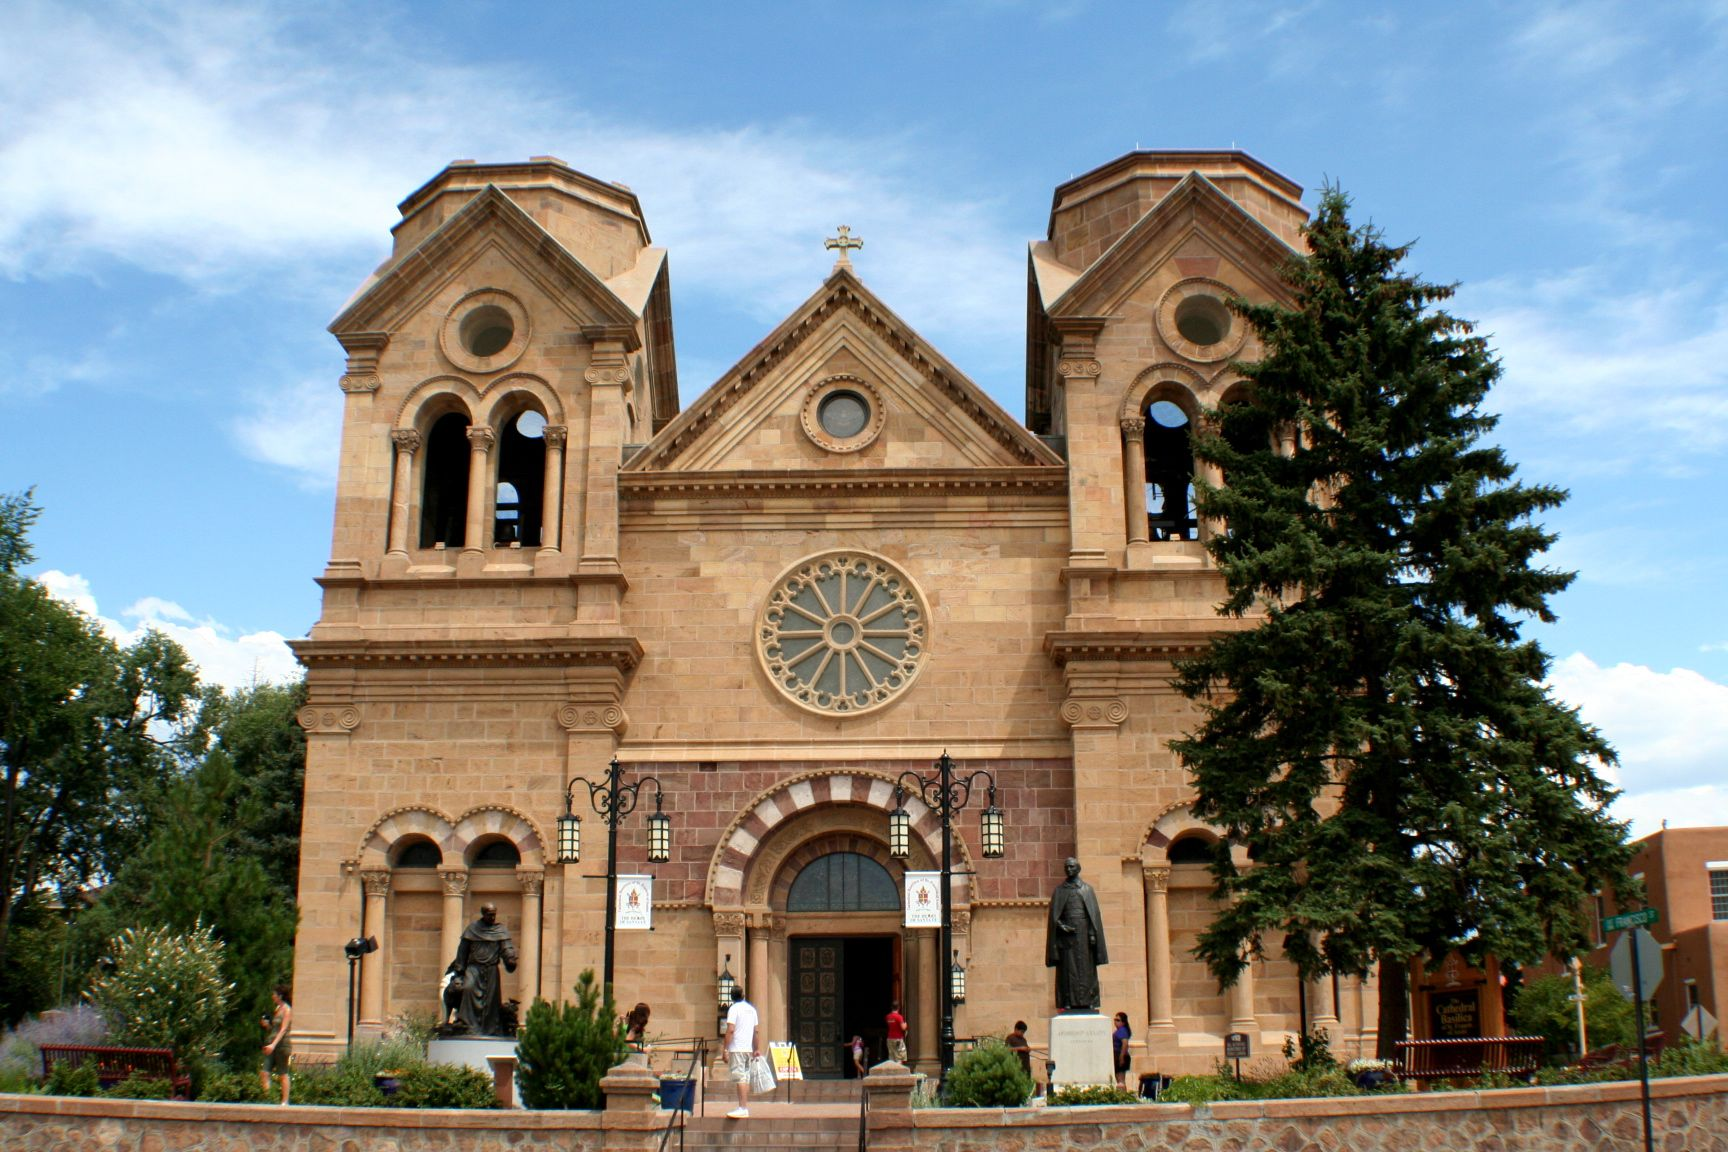 Cathedral of St Francis Santa Fe New Mexico just off of the